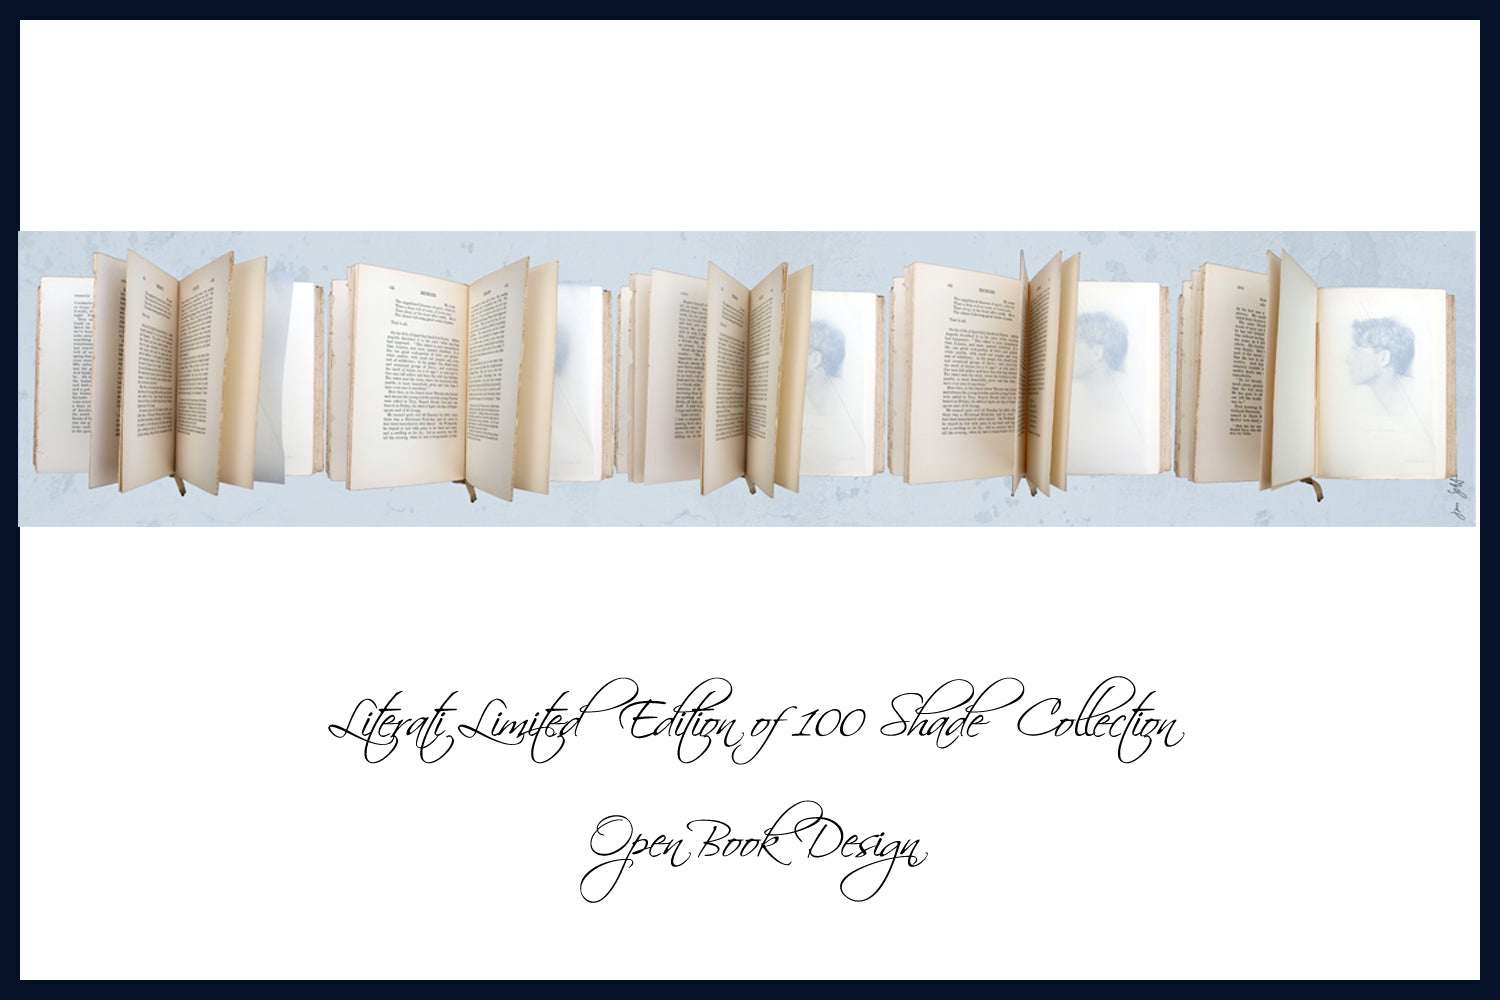 Open Book - Limited Edition Lampshades Featuring Poet Rupert Brooke's Memoir